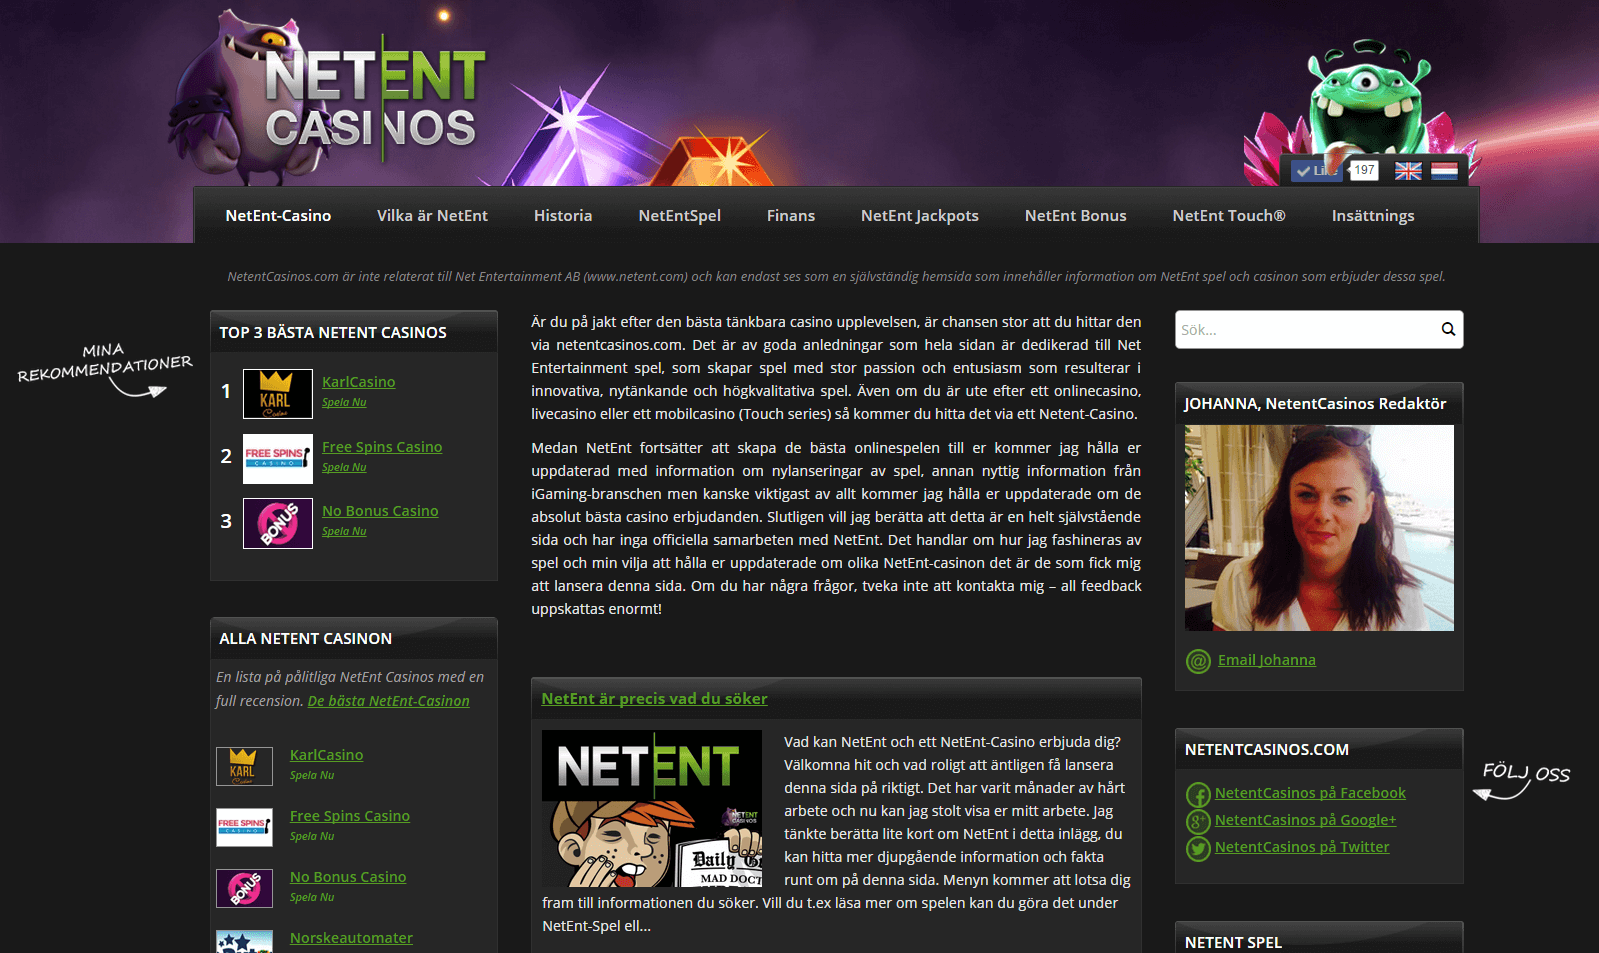 all netent casinos